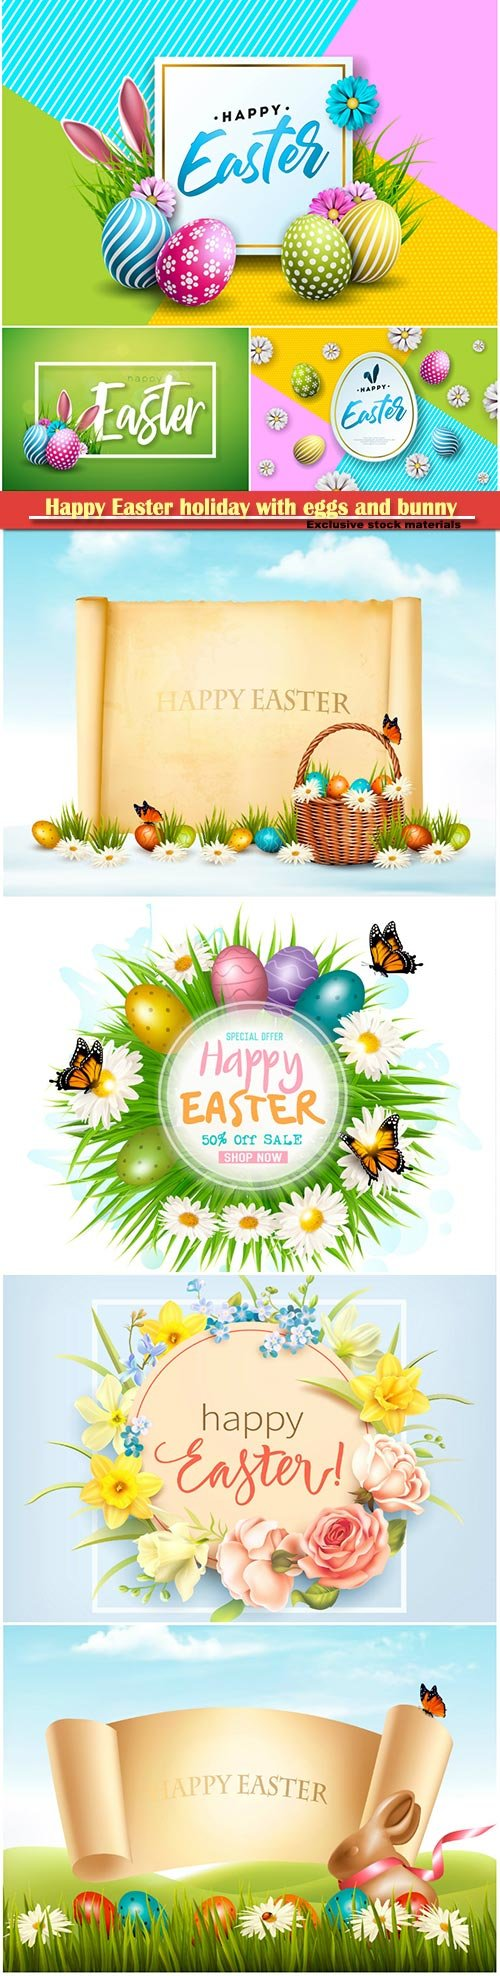 Happy Easter holiday with eggs and bunny, vector illustration # 20